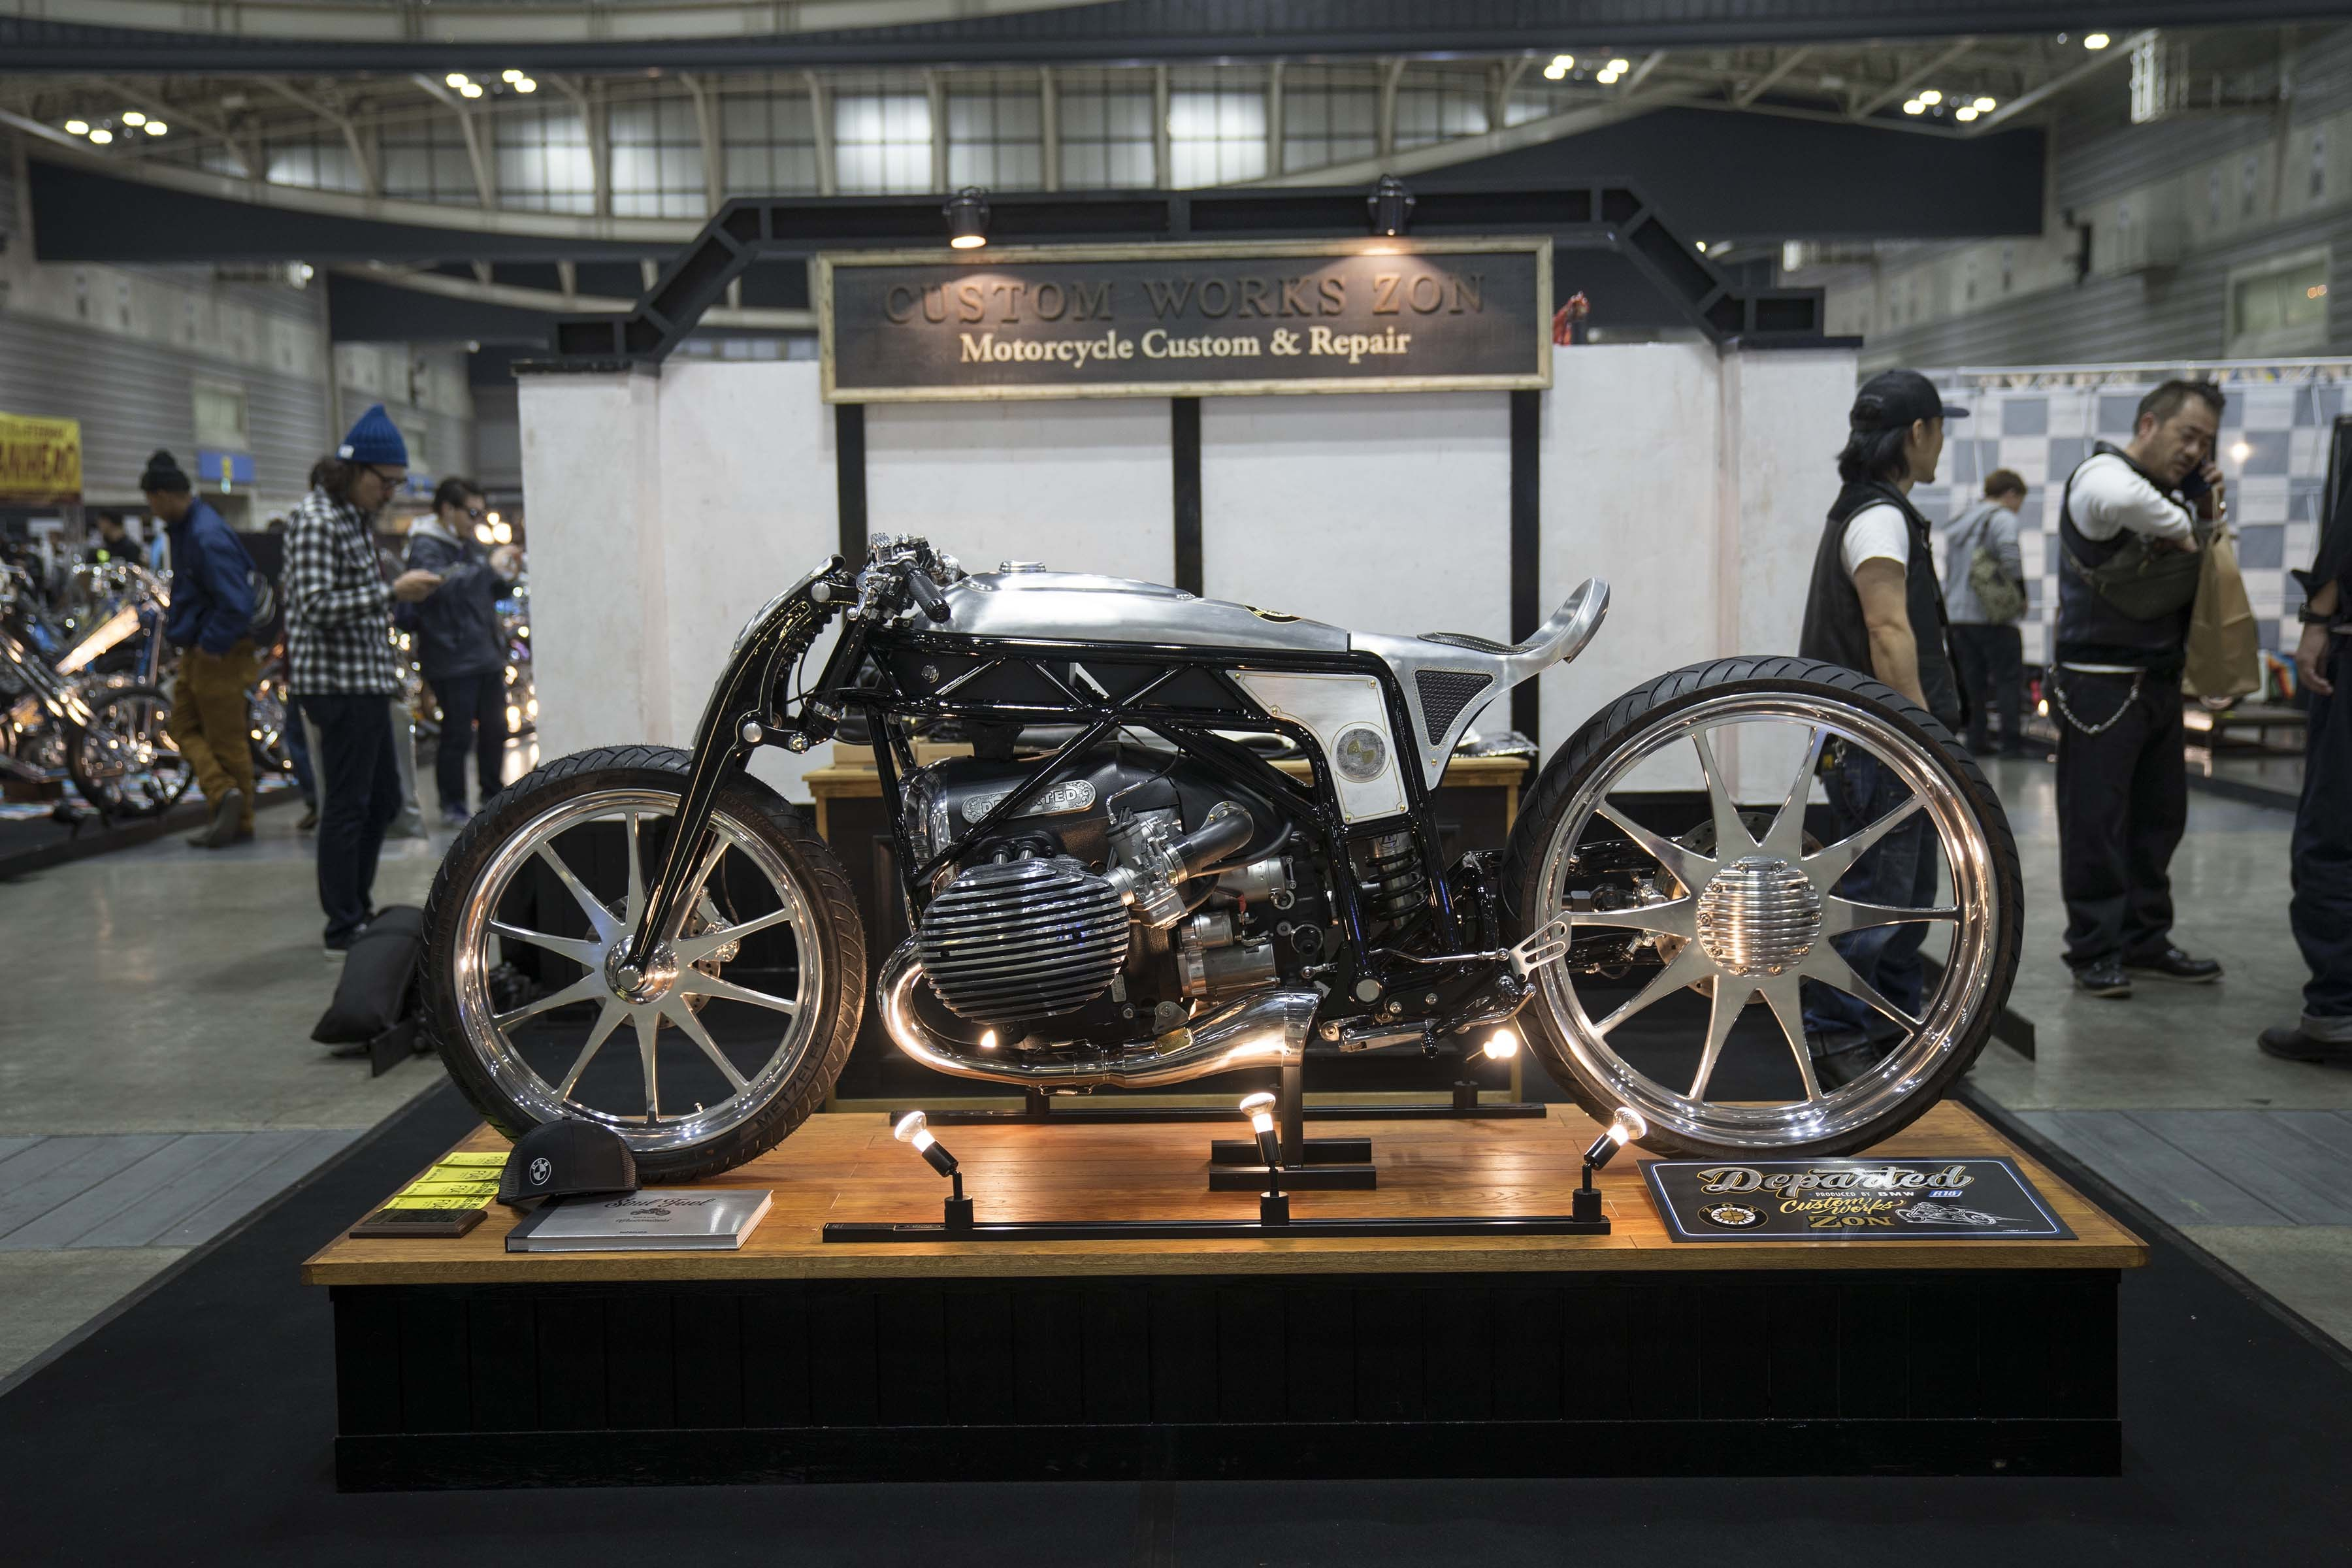 Custom-Works-Zon-BMW-1800cc-engine-prototype-31